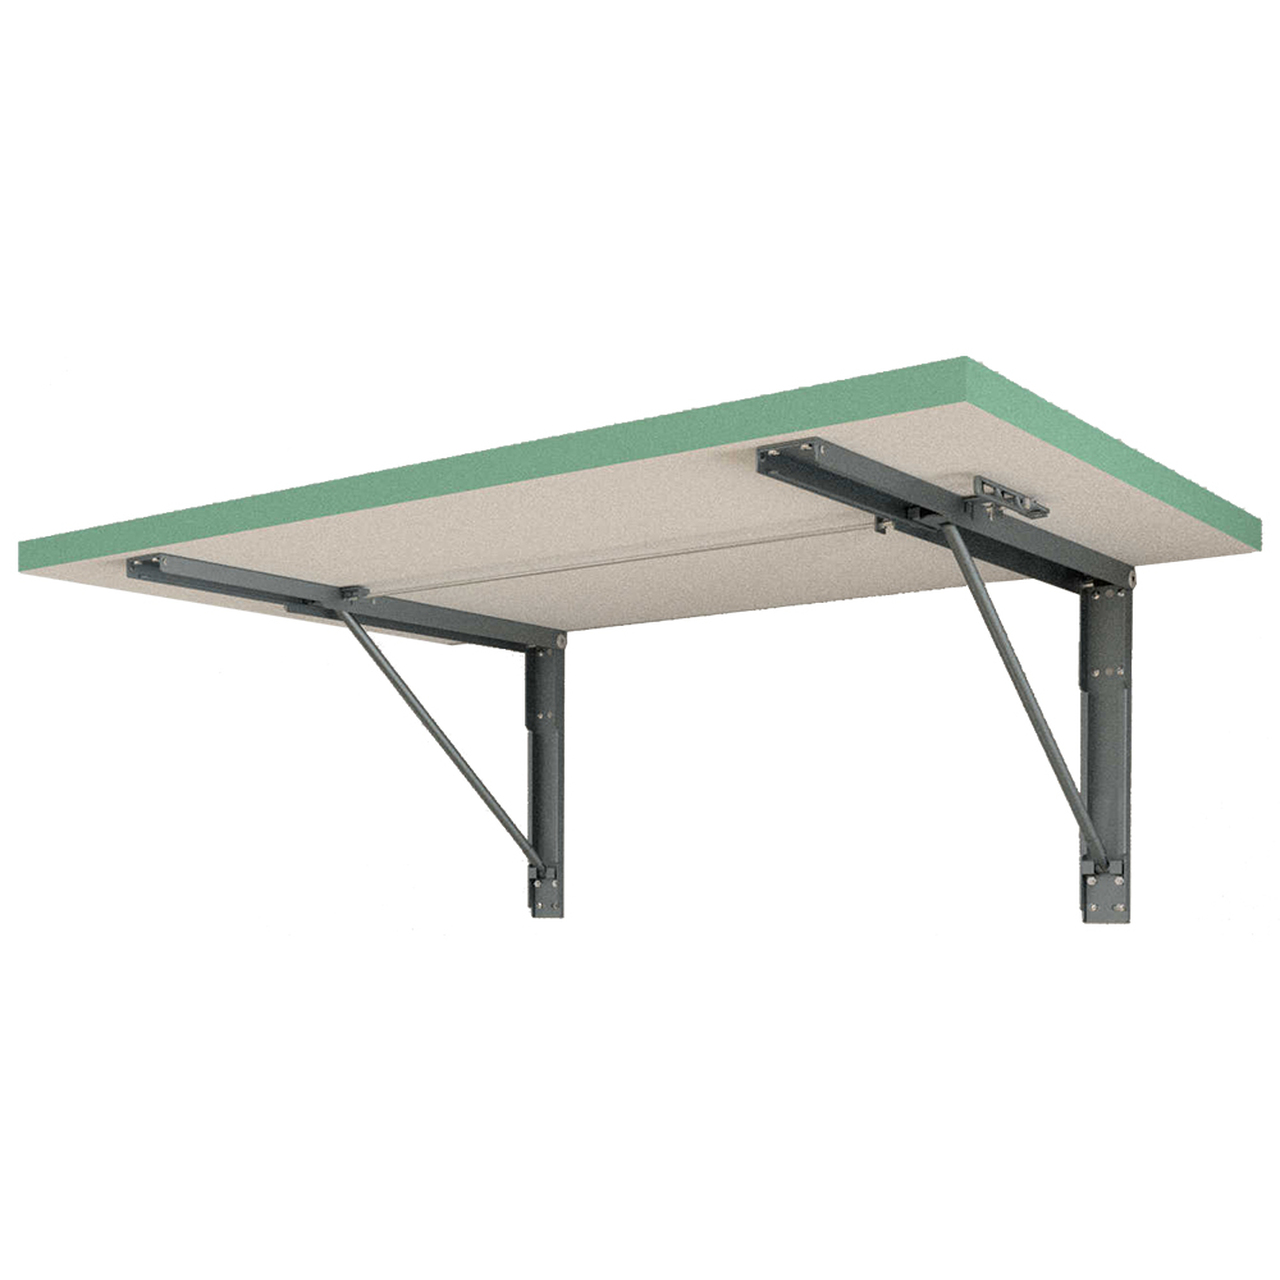 Dusty Jade Green formica folding table with a pair of our FDP brackets attached